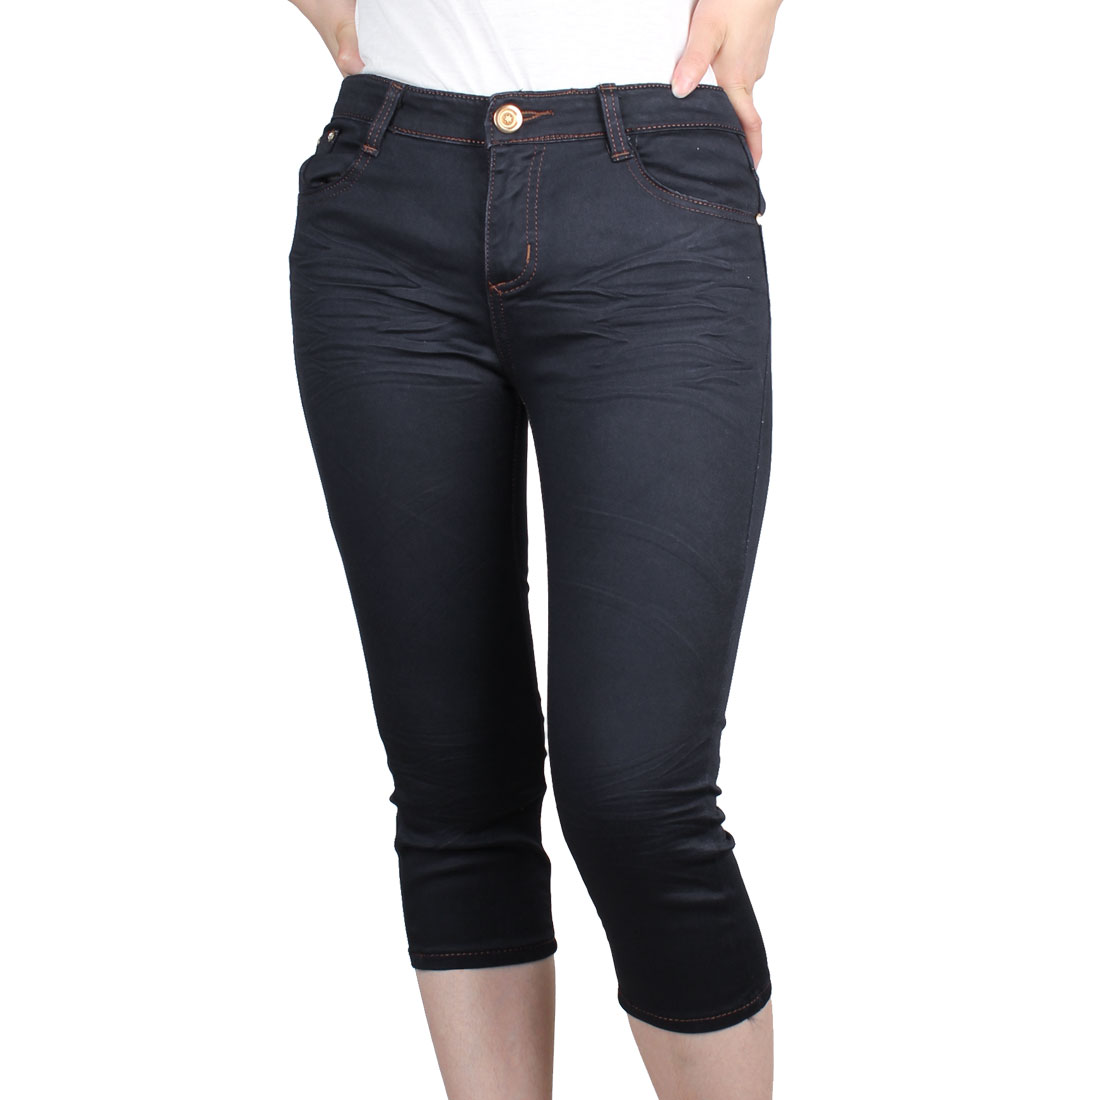 Navy Blue S Belt Loop Front Slanting Pockets Zip Fly Capris Jeans for Women